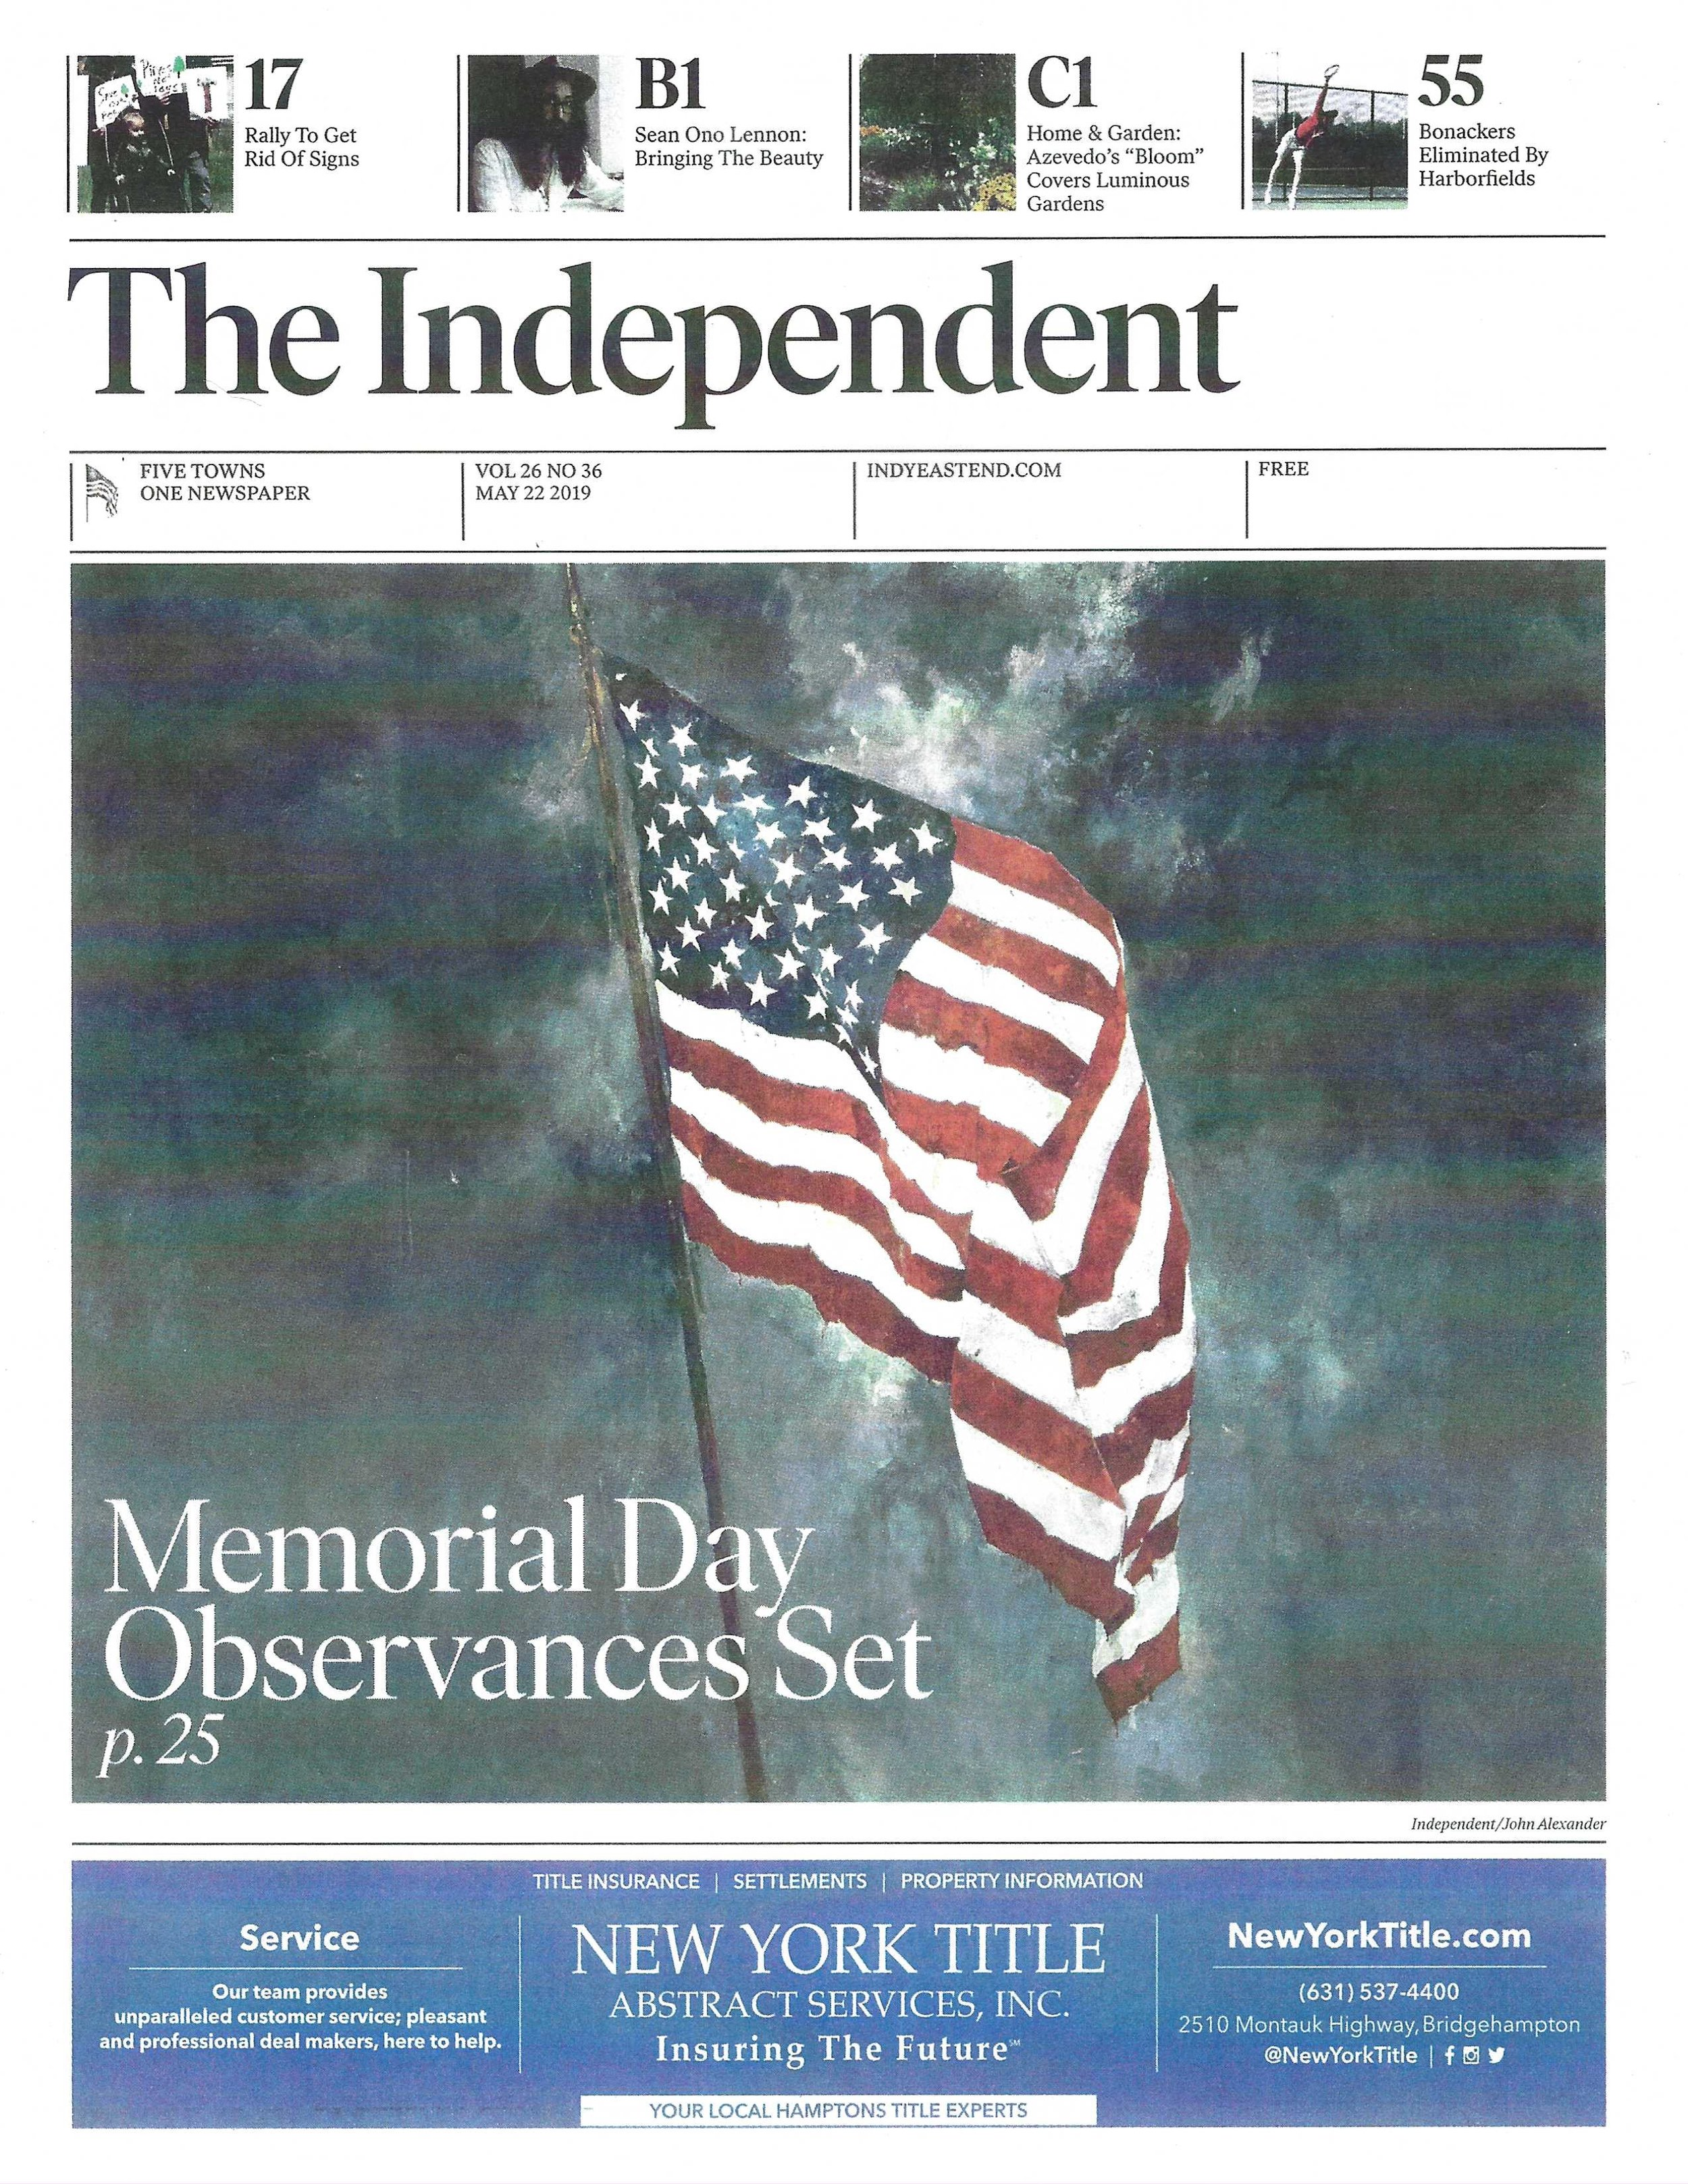 60 The Independent - Home & Garden_May 2019.jpg